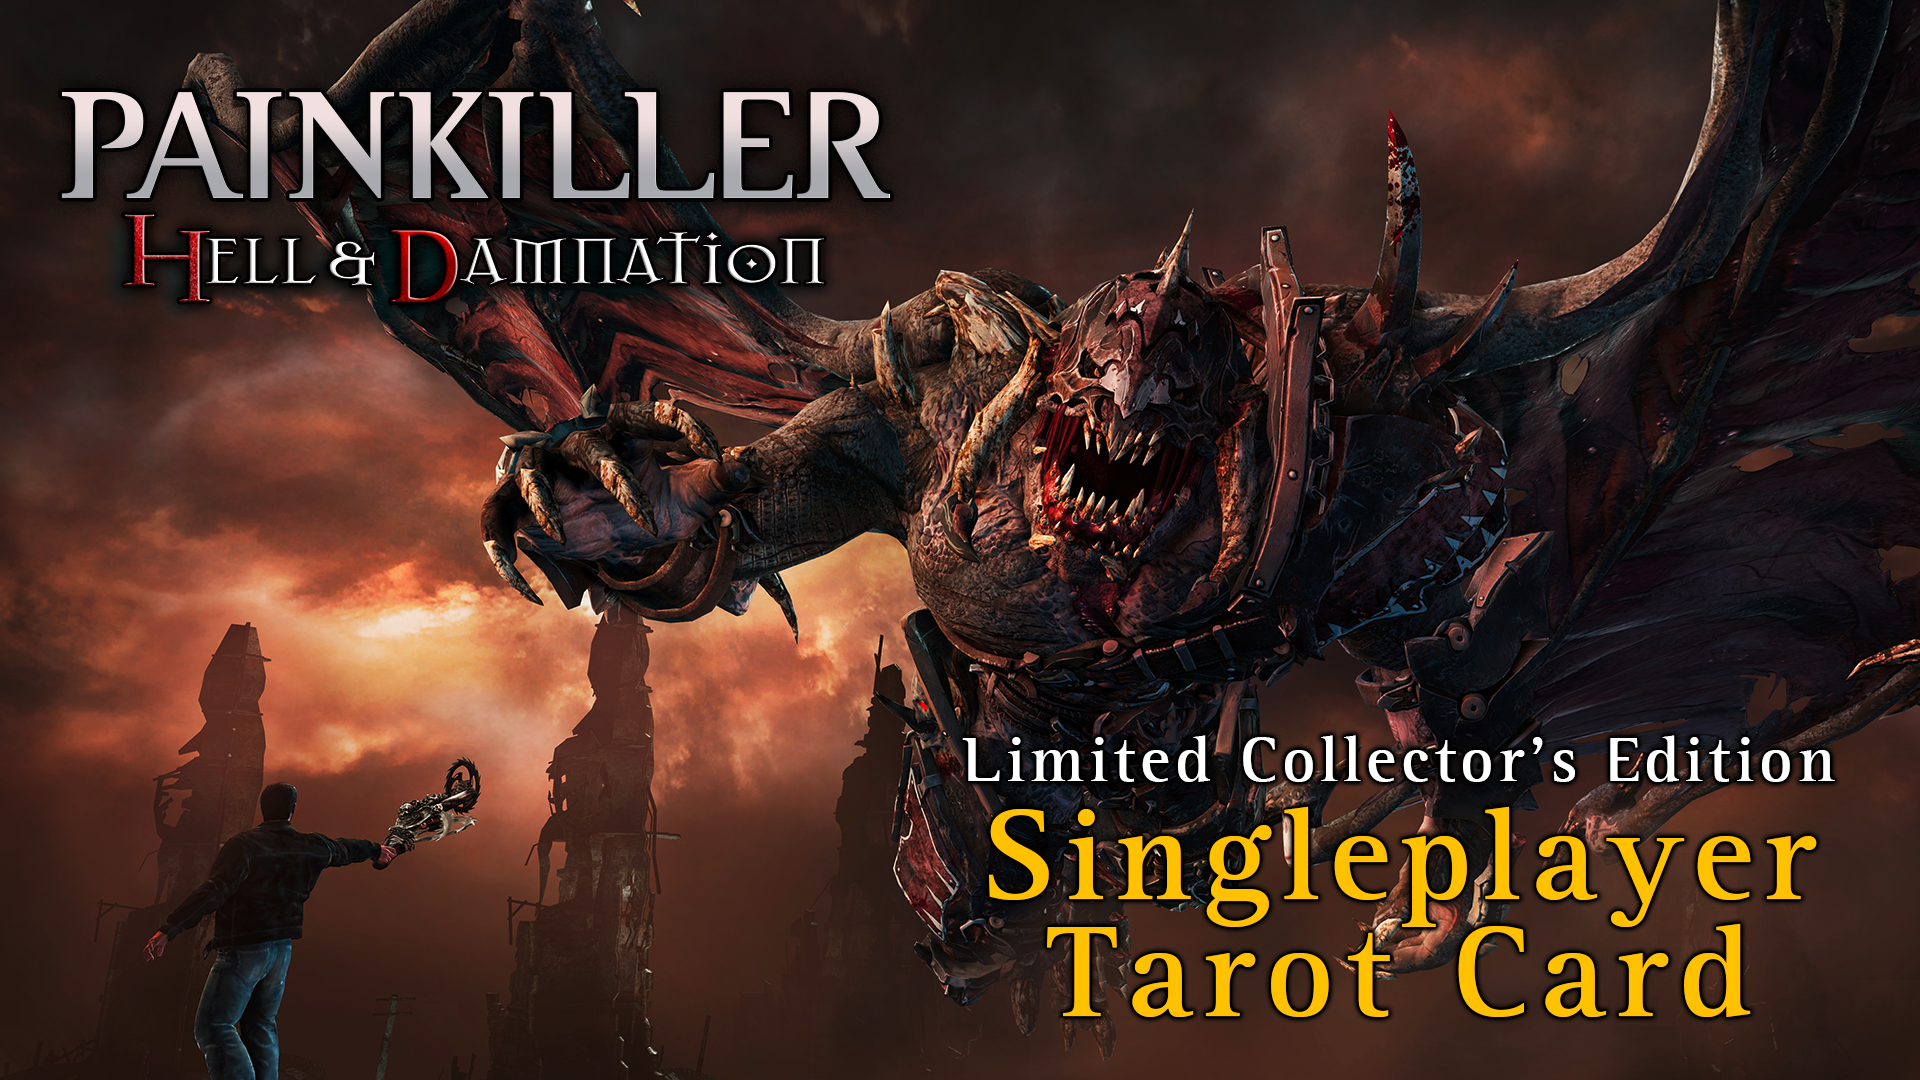 Painkiller Hell & Damnation: Singleplayer Tarot Card Pack screenshot